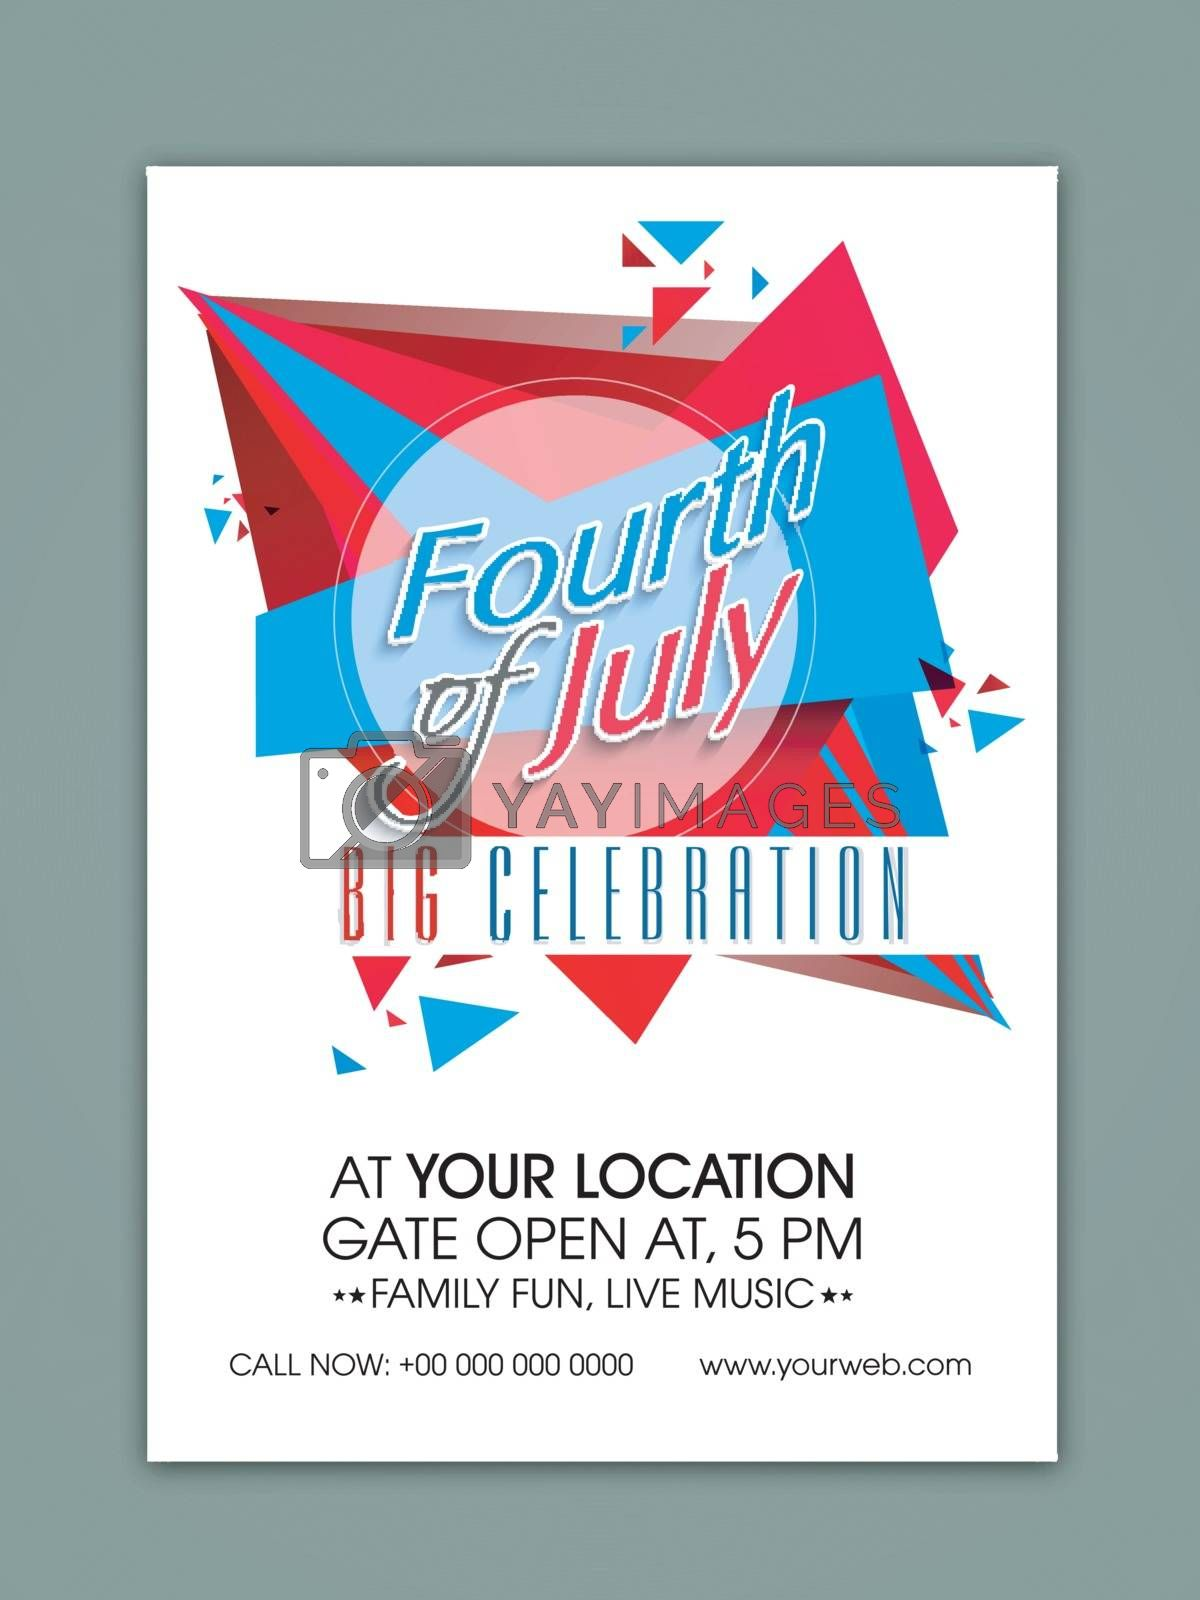 Creative Template, Banner or Flyer design for Fourth of July, American Independence Day celebration.